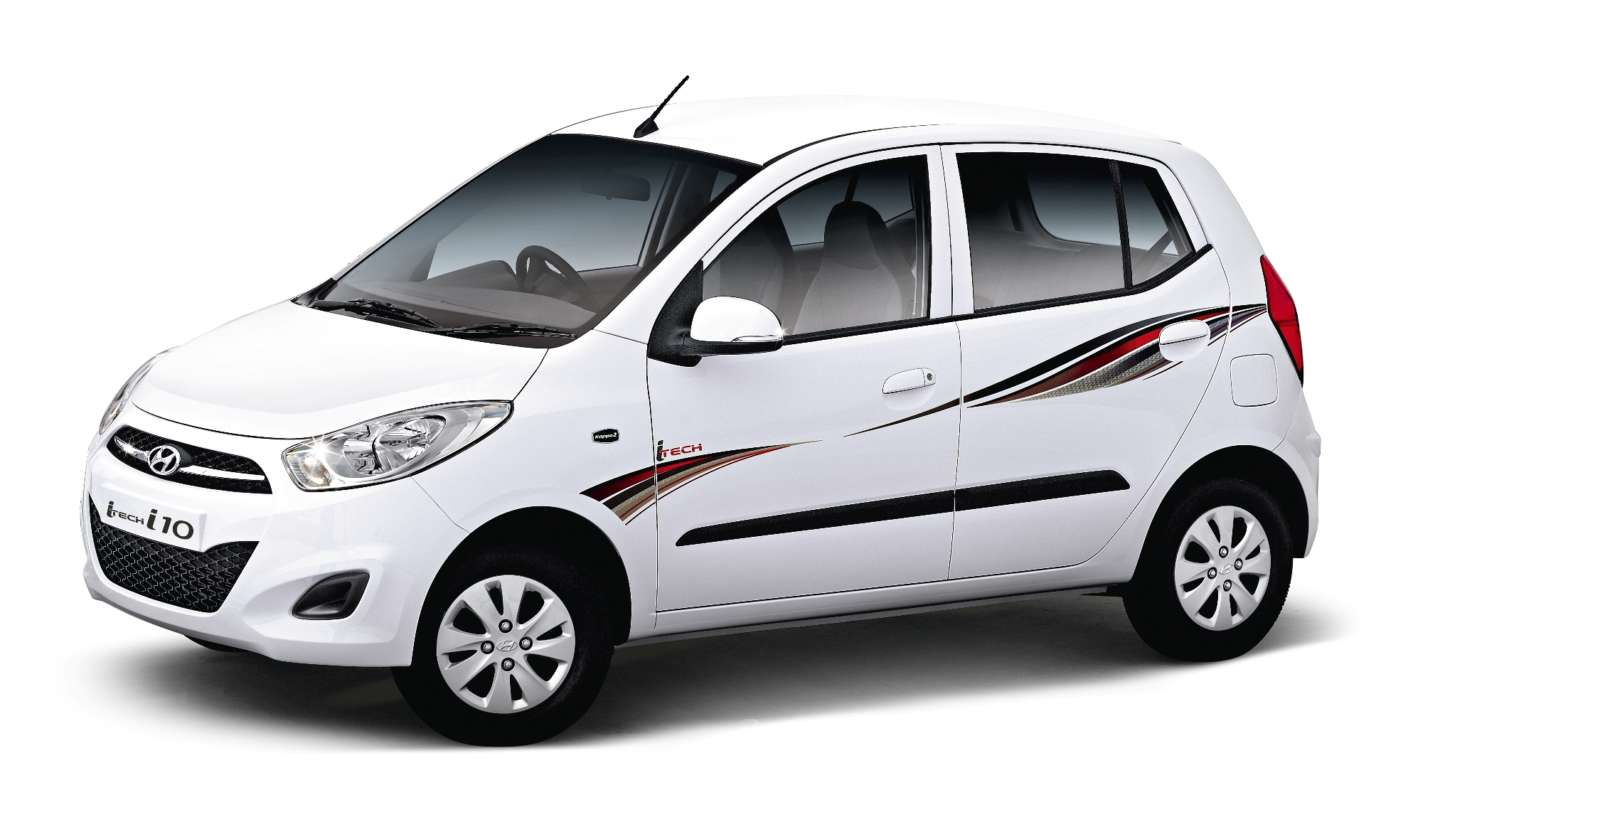 hyundai i10 i tech special edition launched inr lakhs motoroids. Black Bedroom Furniture Sets. Home Design Ideas